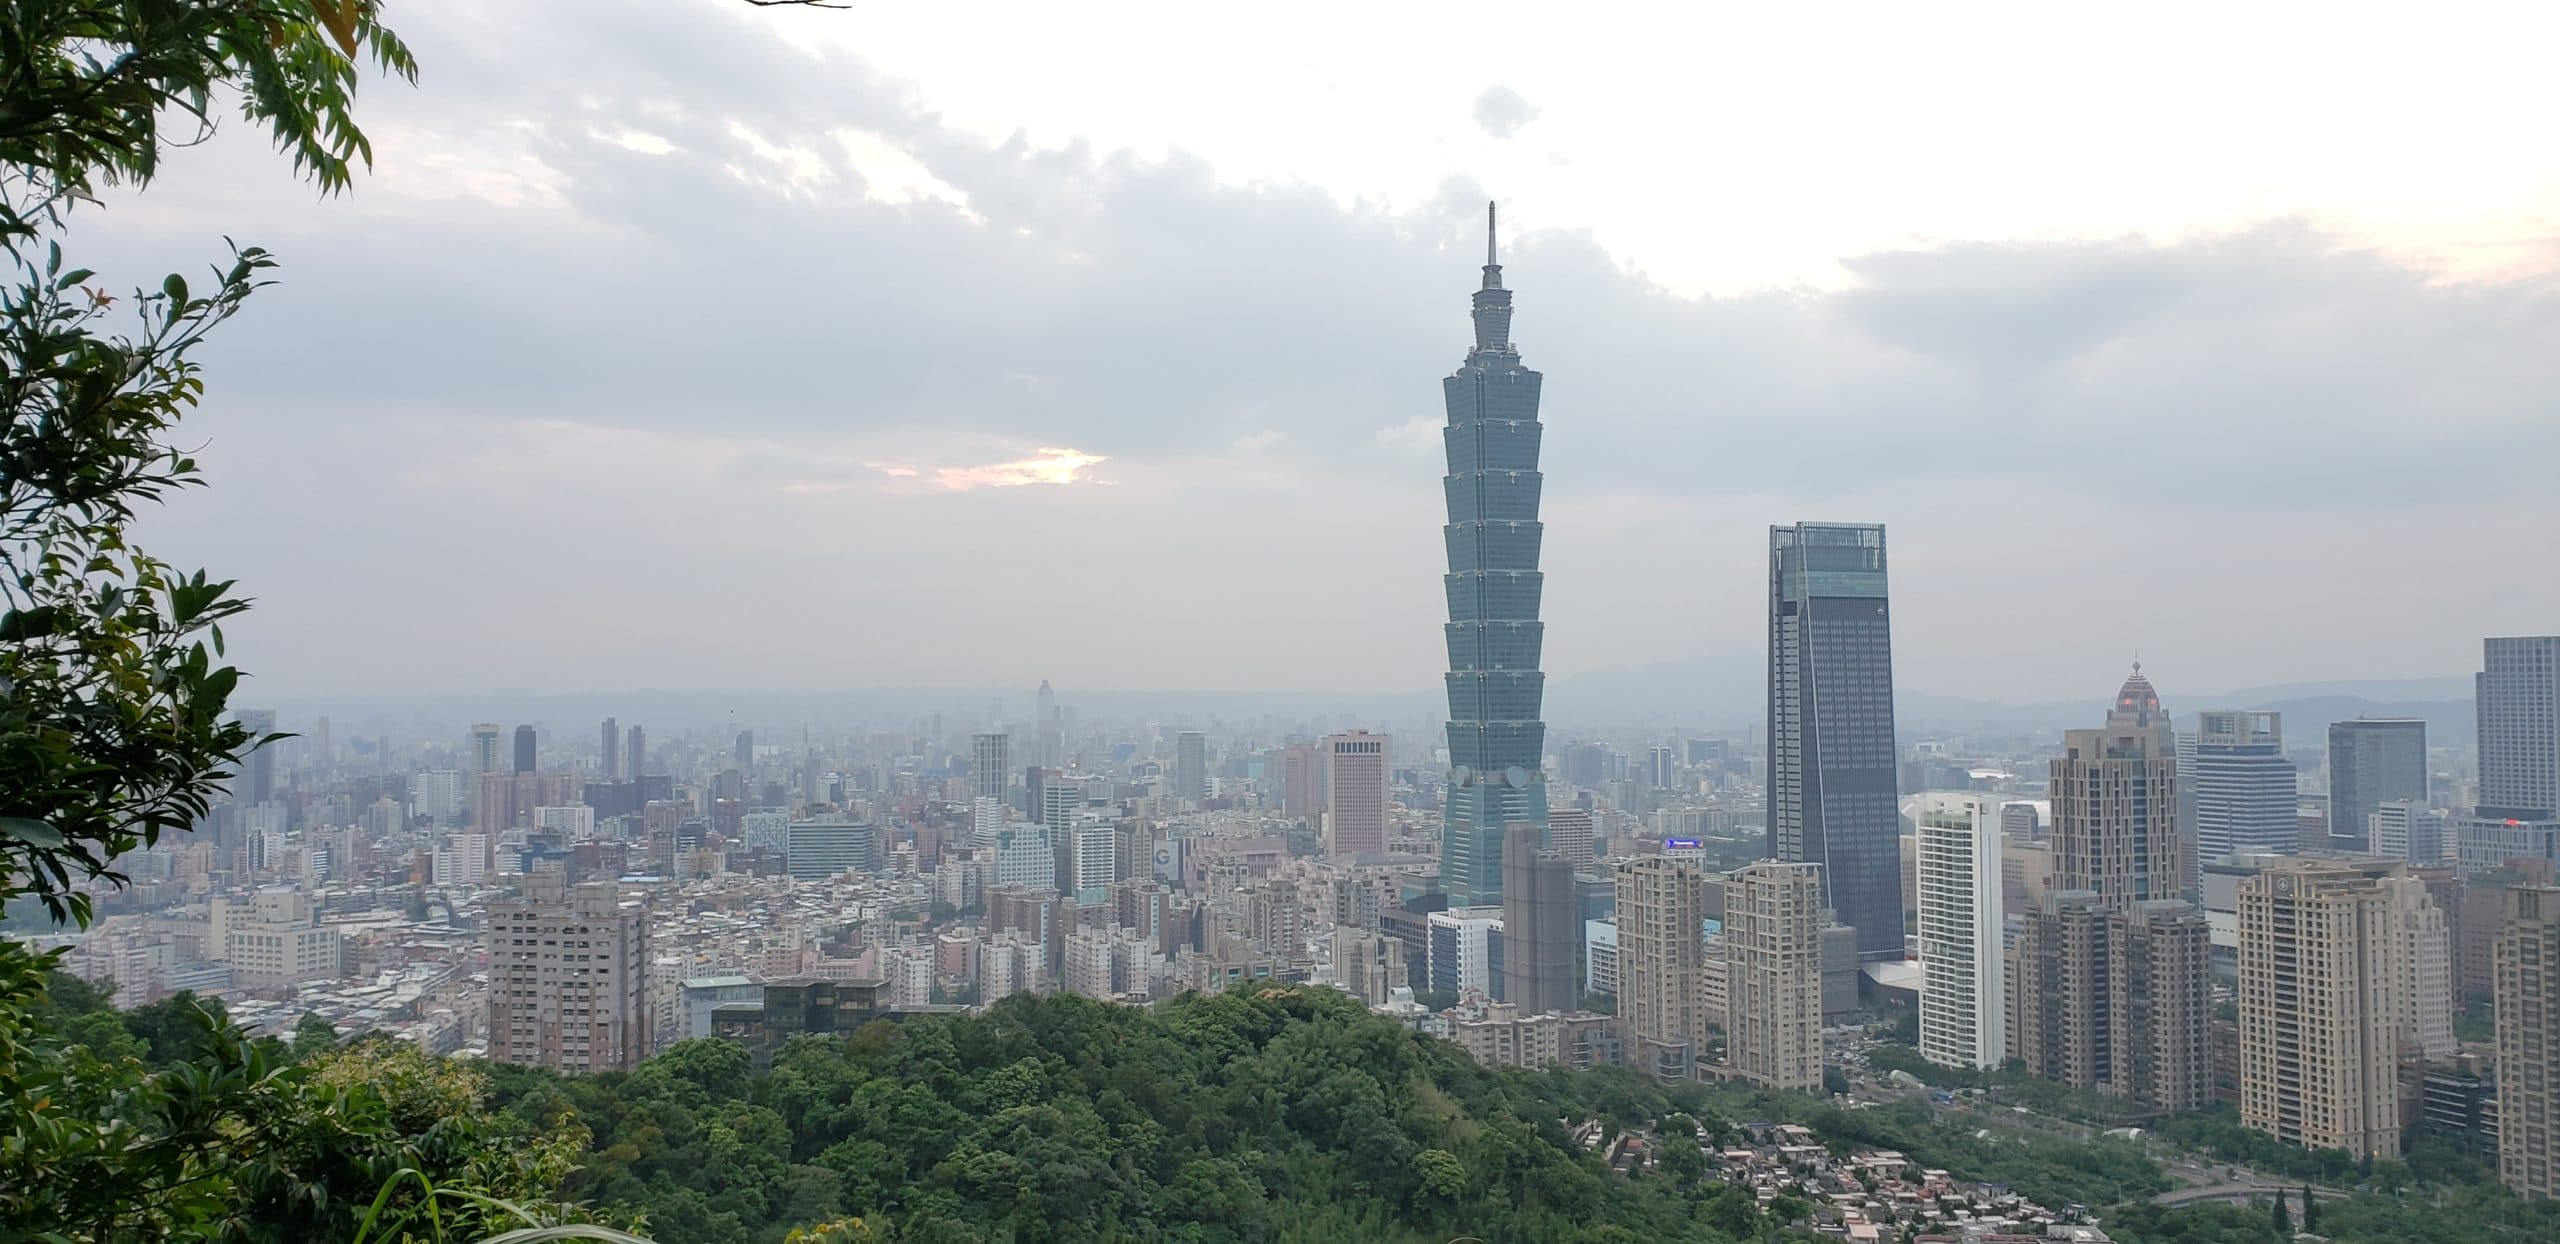 Taipei 101 Building and city of Taipei from the top of Elephant Mountain